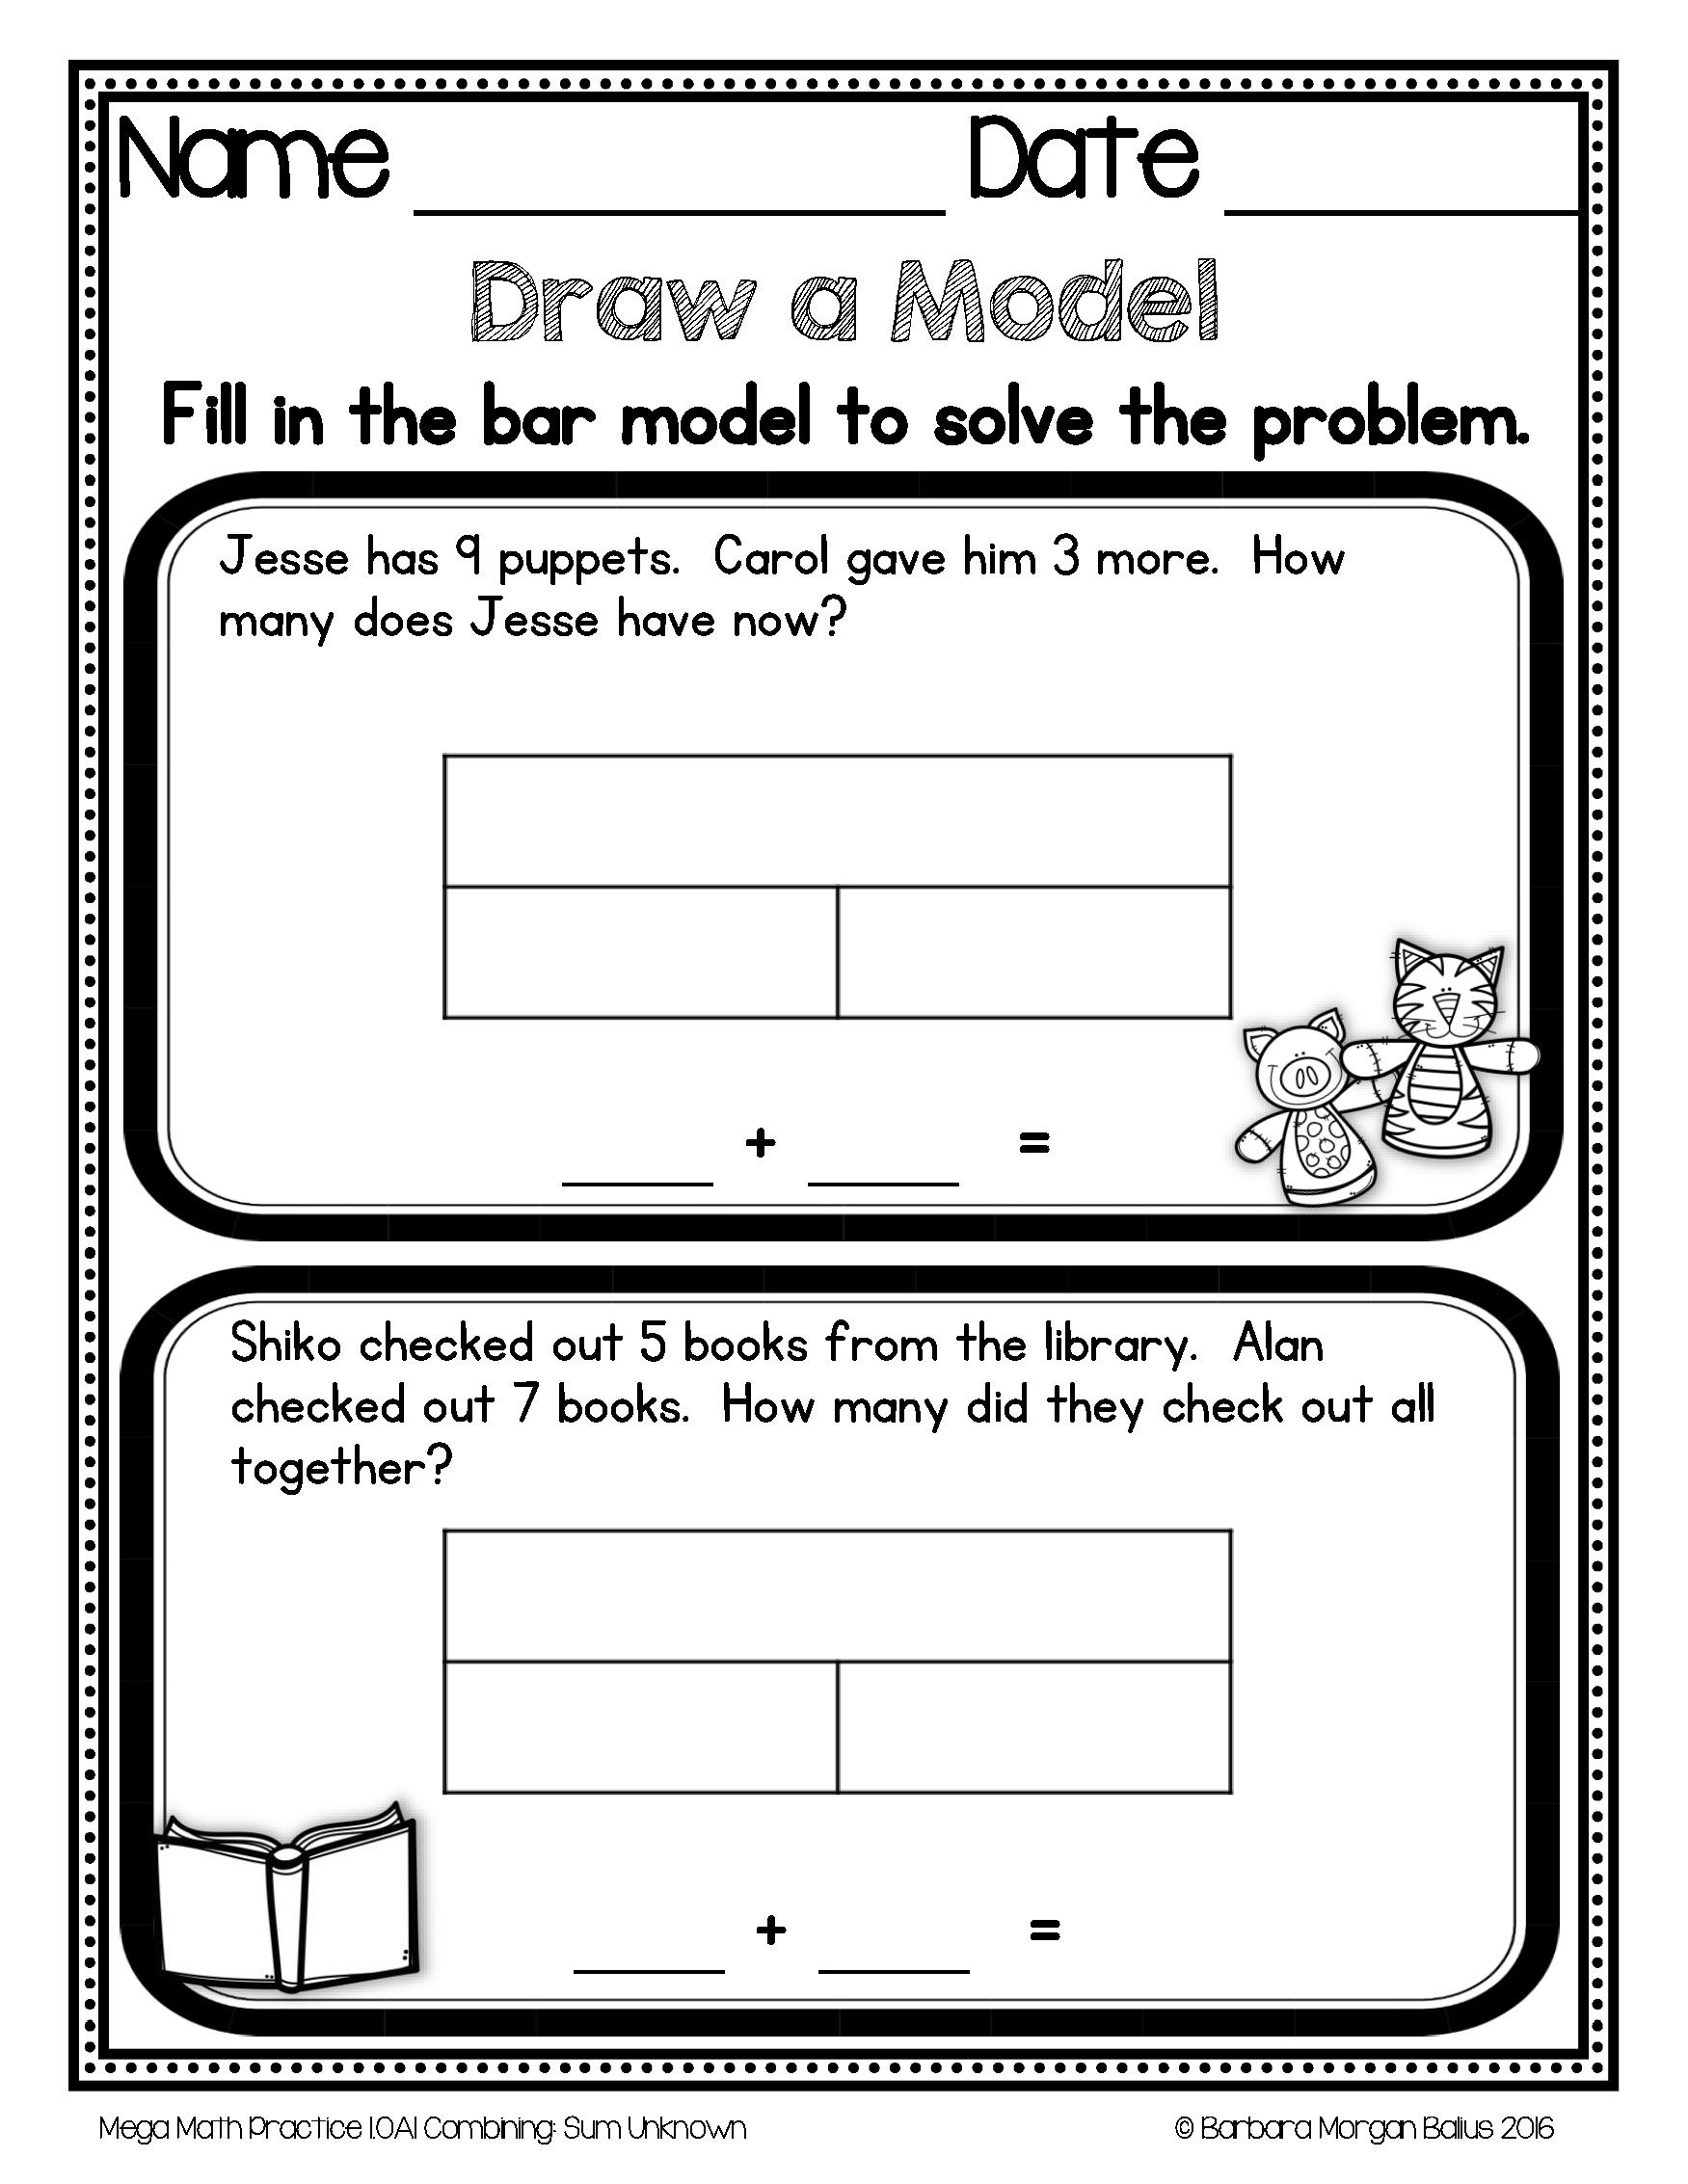 hight resolution of 26 Bar models Teaching Resources to Share ideas   model teaching